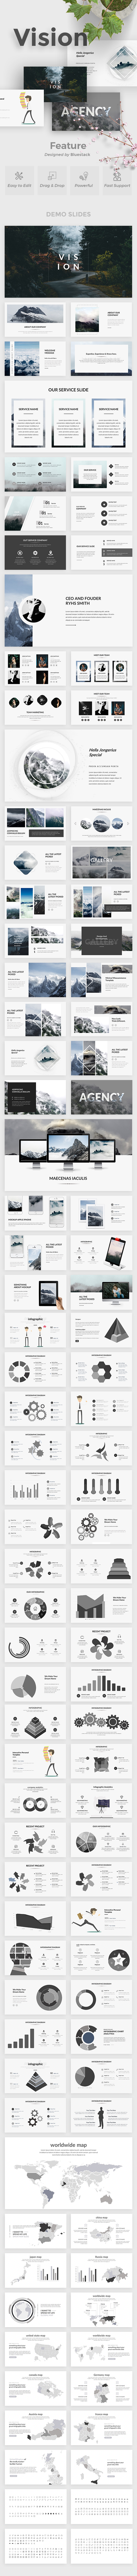 Vision Creative Keynote Template - Creative Keynote Templates